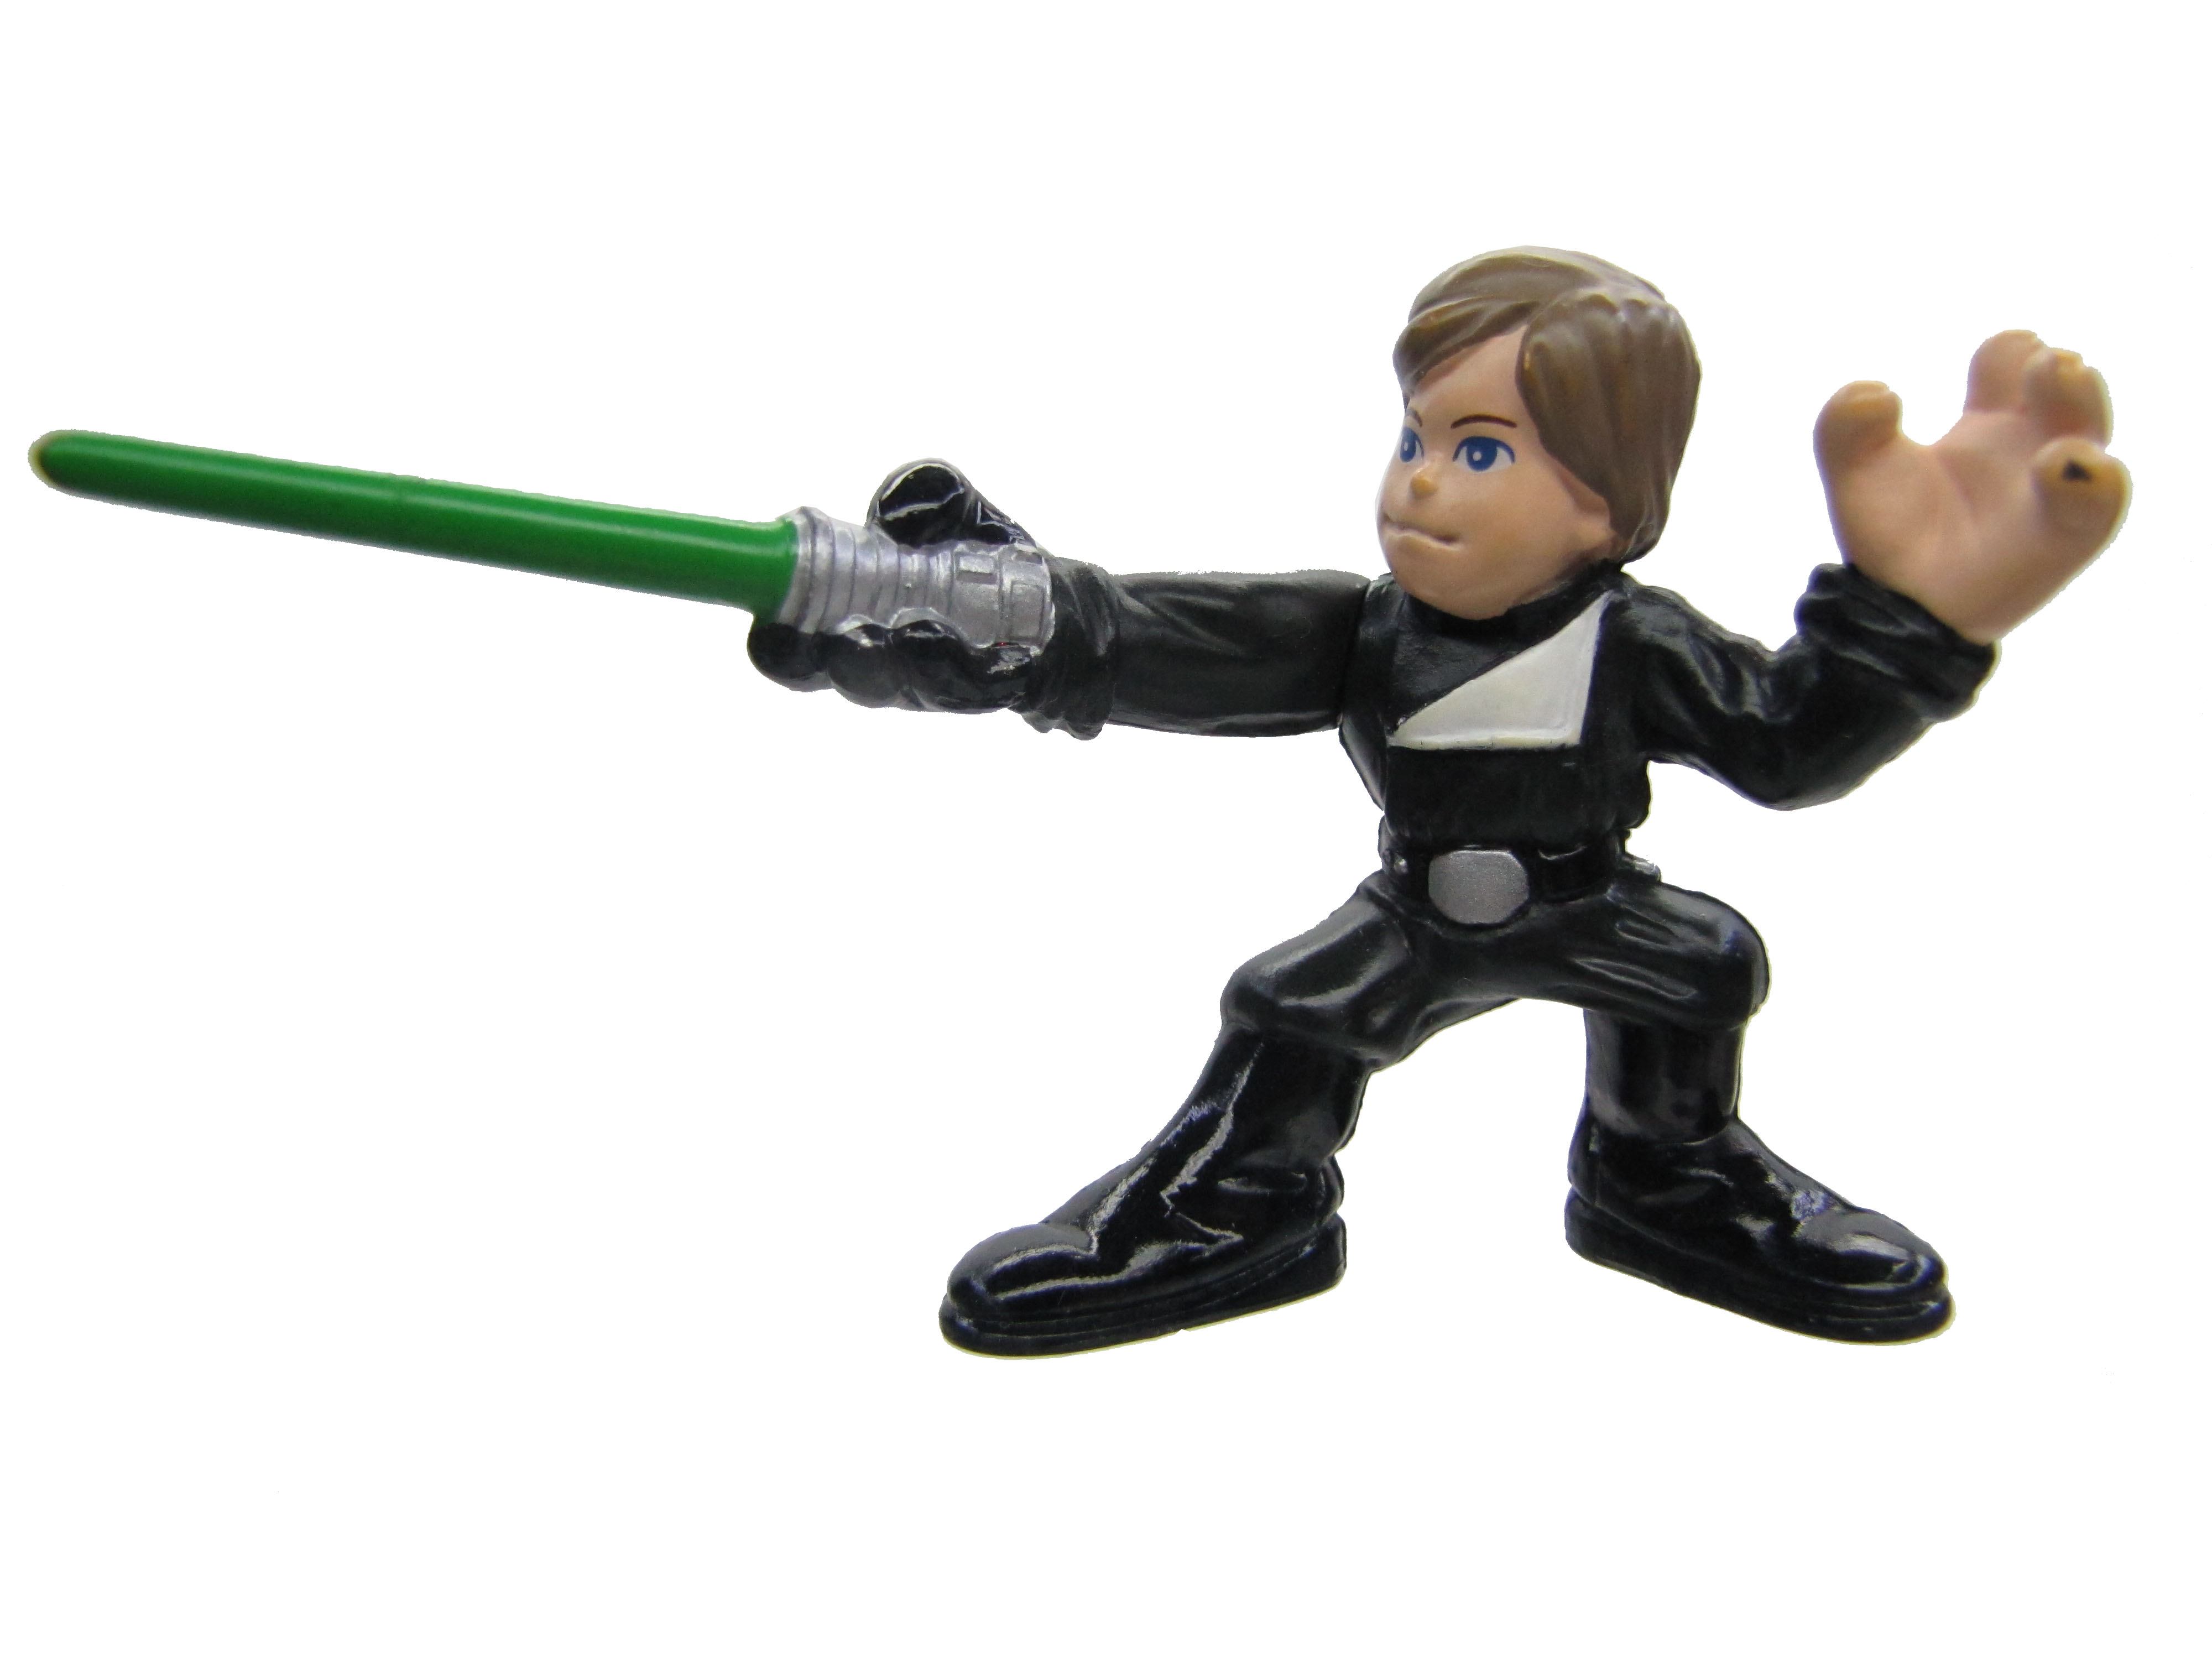 Star Wars Galactic Heroes Luke Skywalker Endor Celebration